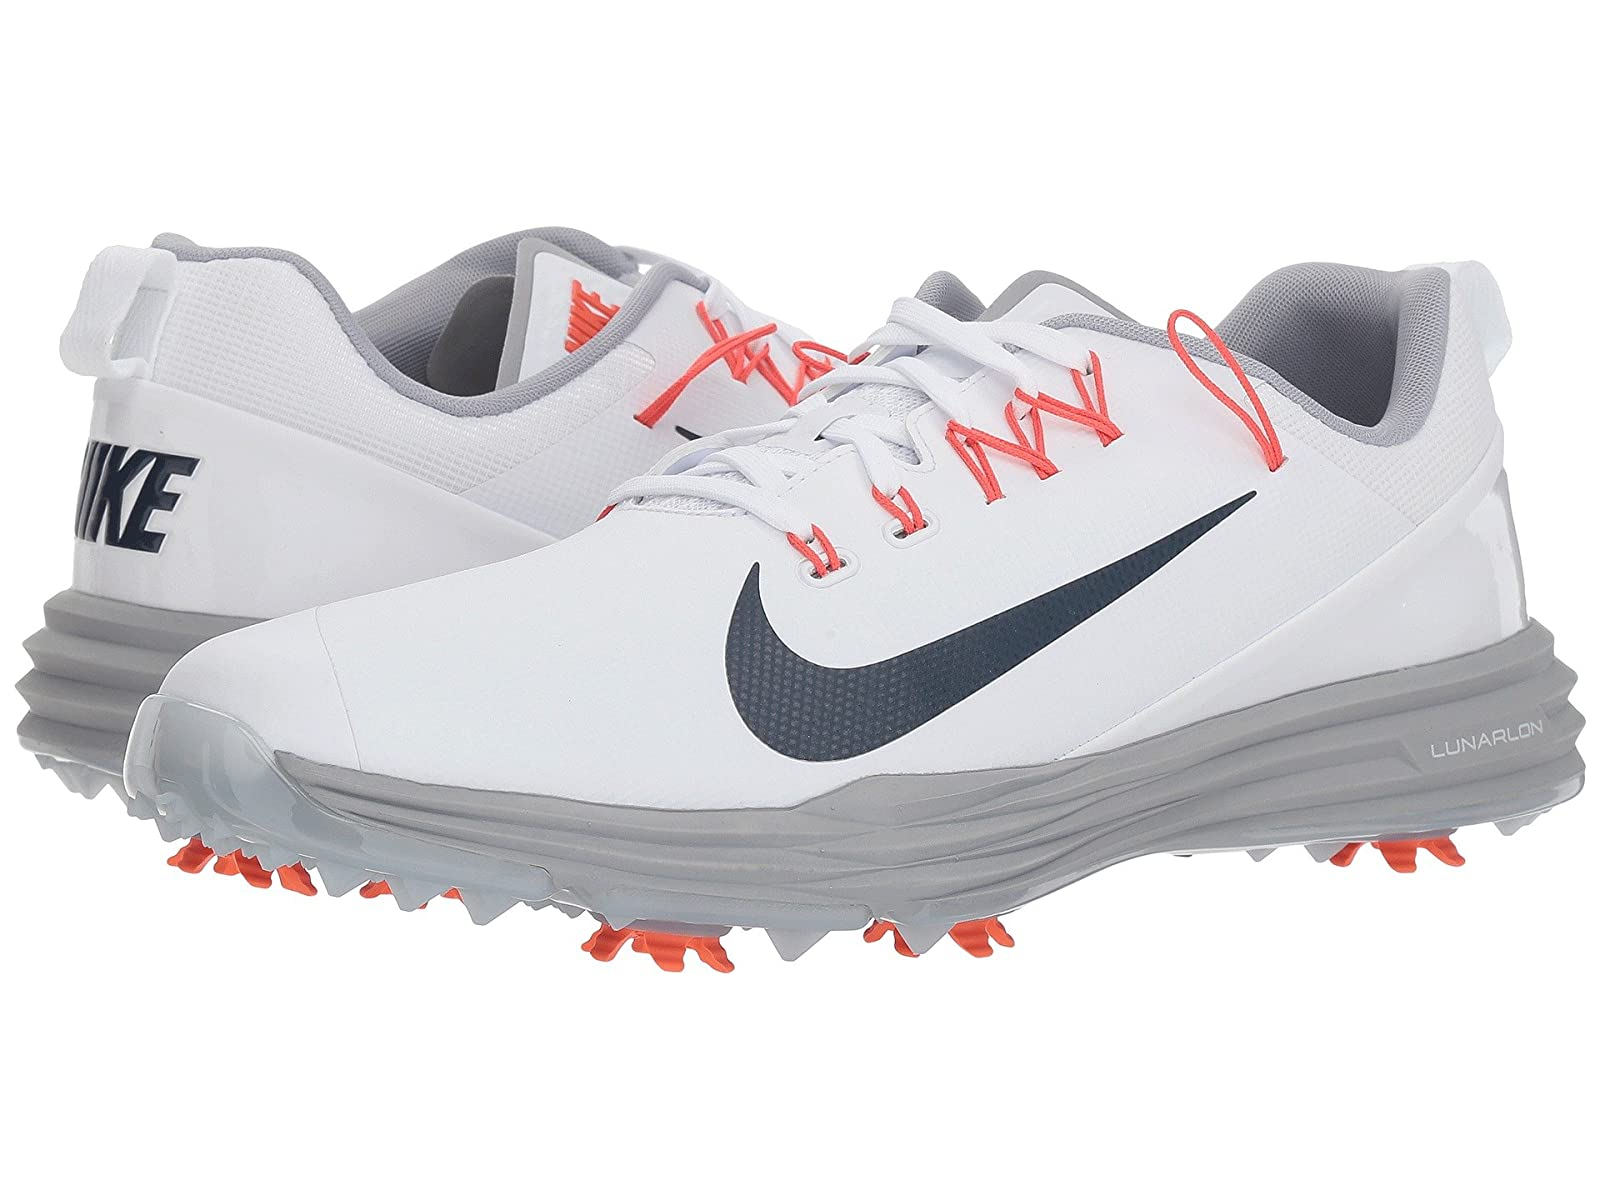 Nike Golf Lunar Command 2Atmospheric grades have affordable shoes